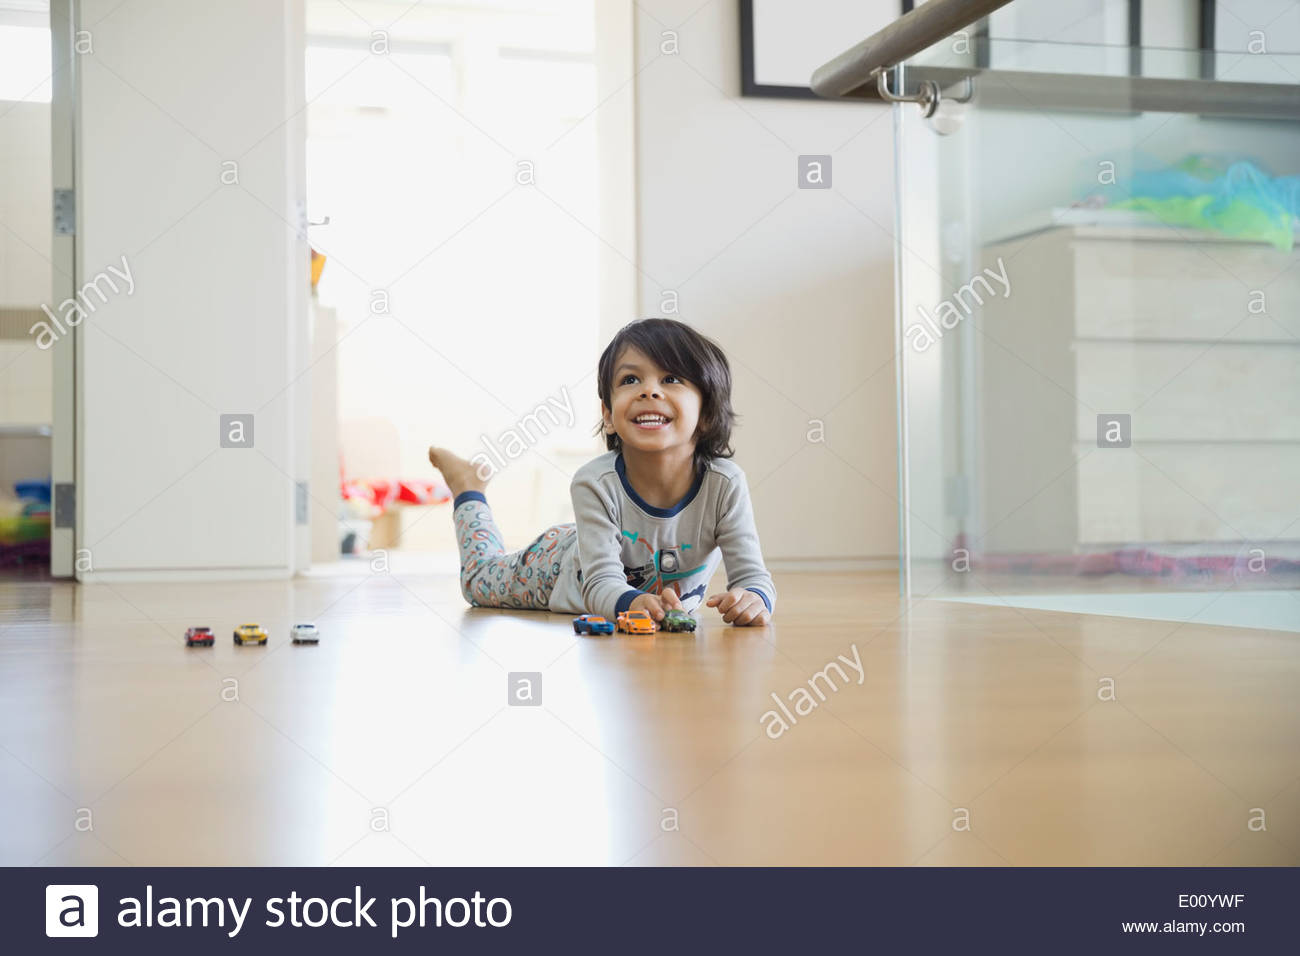 Boy Playing with toy cars sur marbre Photo Stock